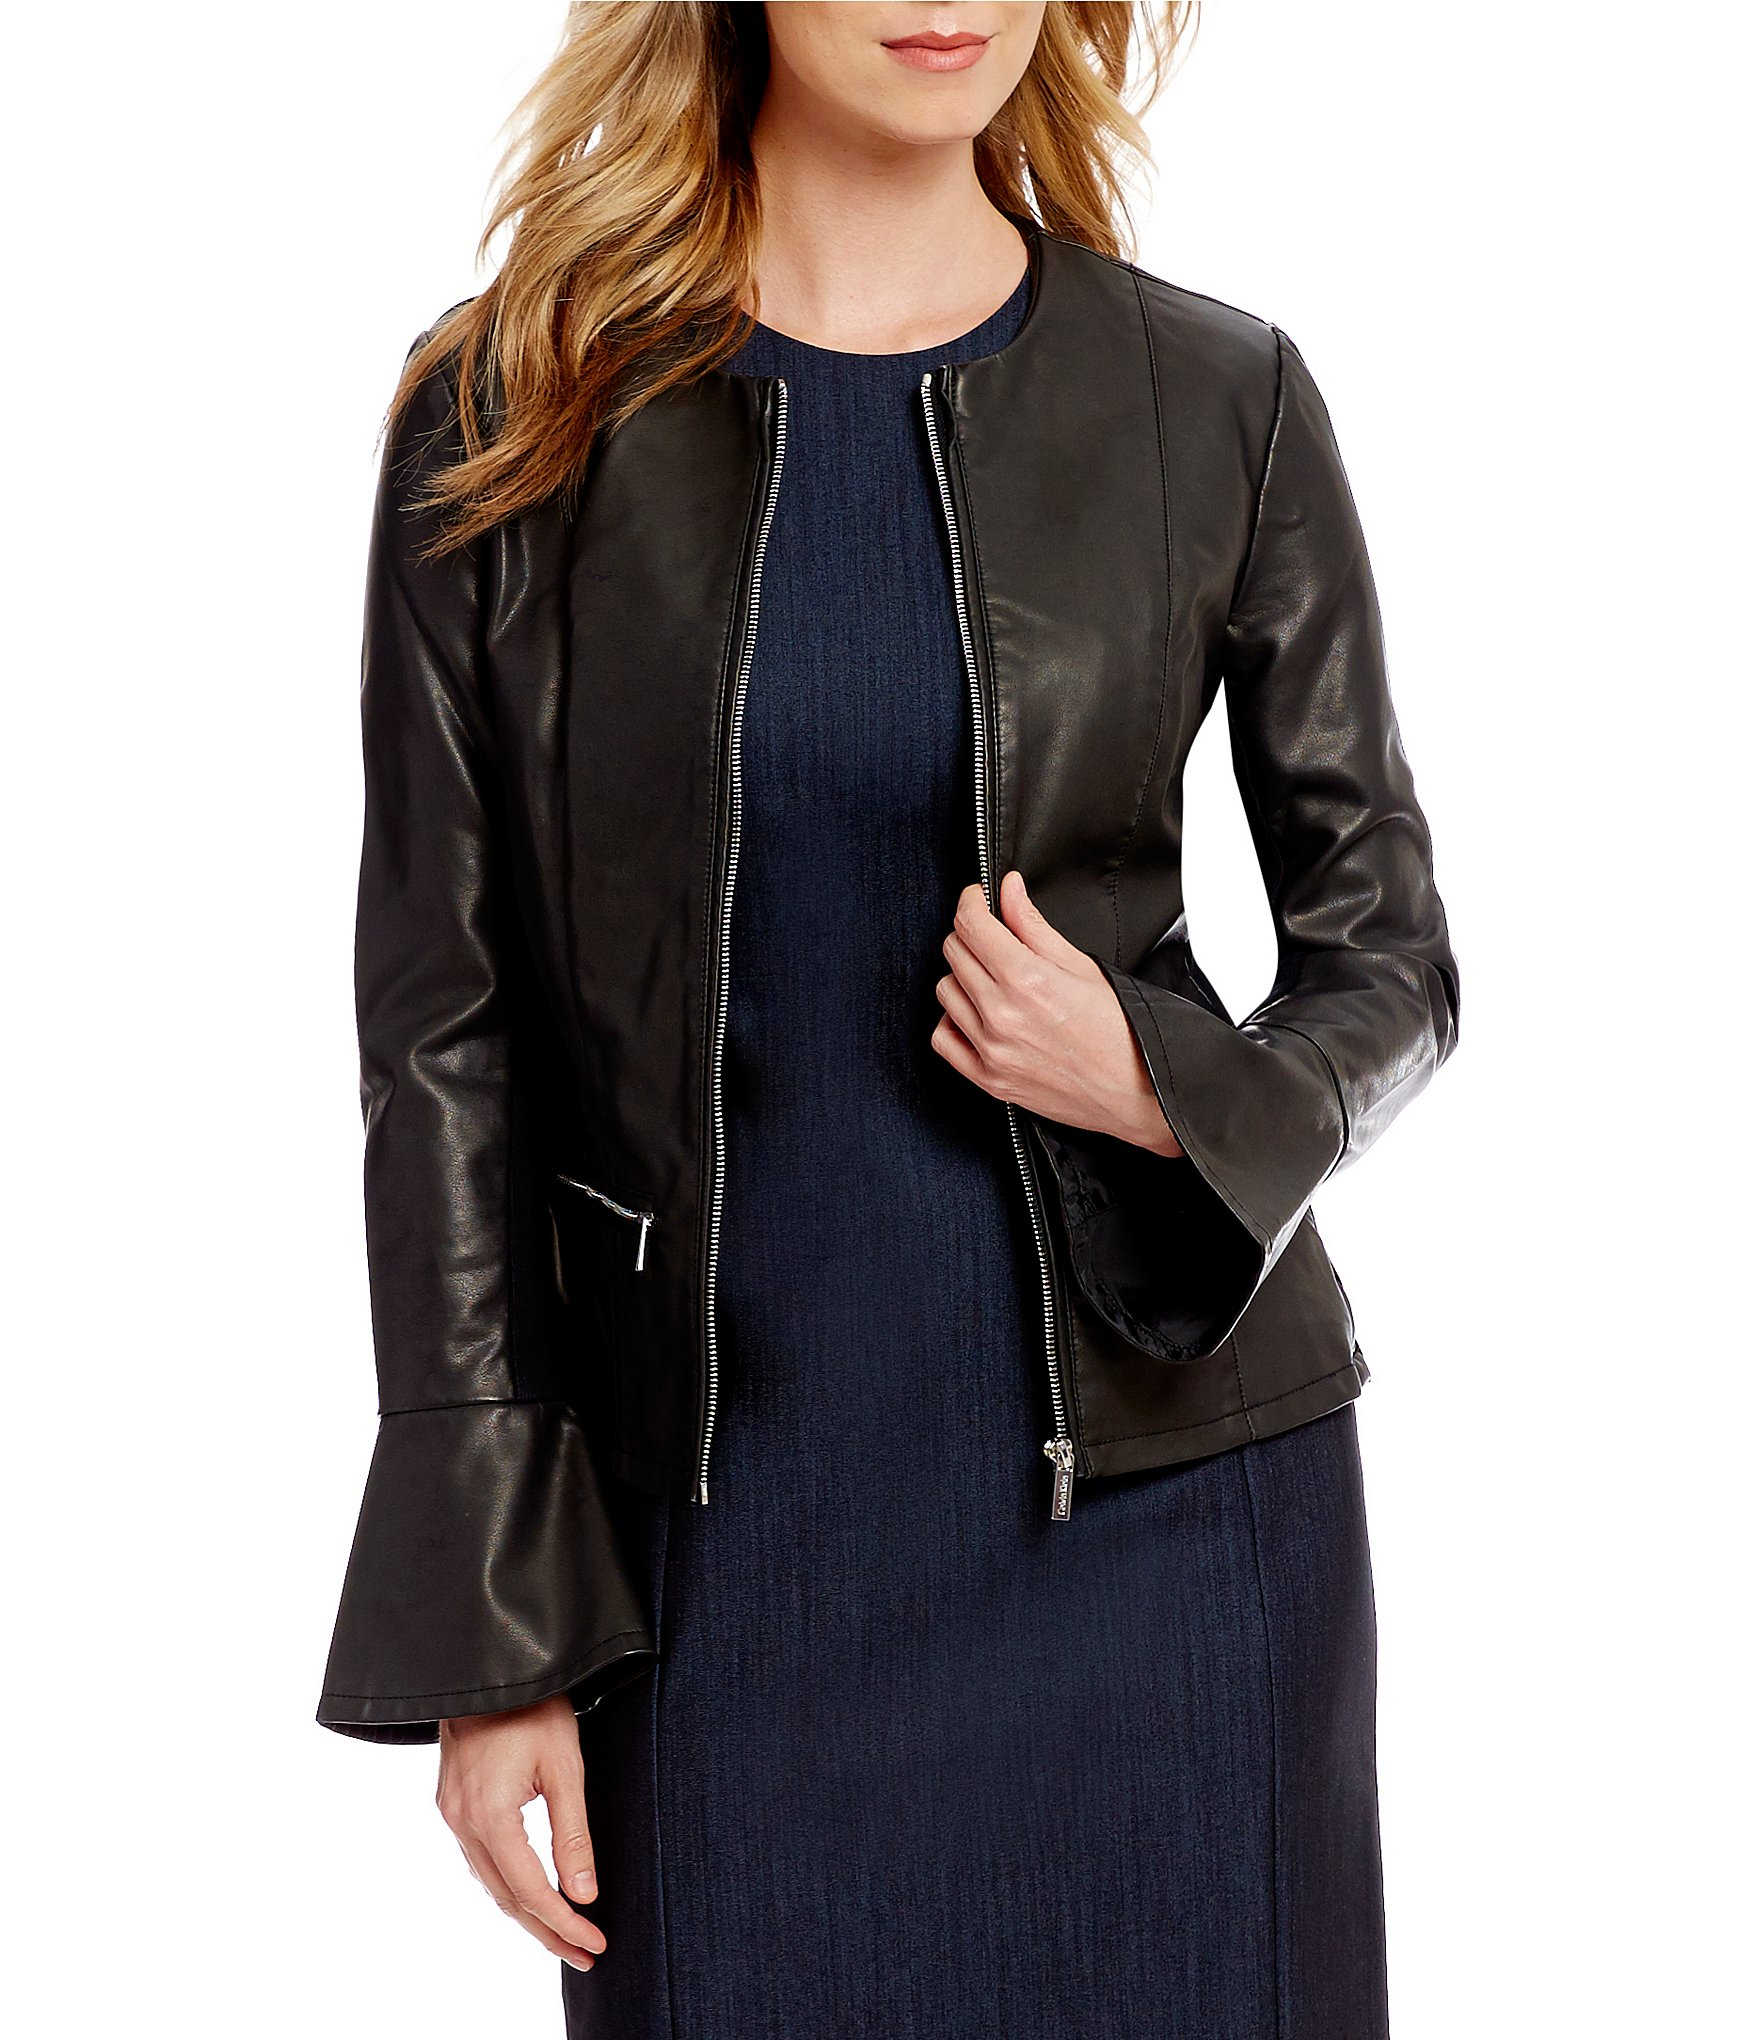 Top leather jackets